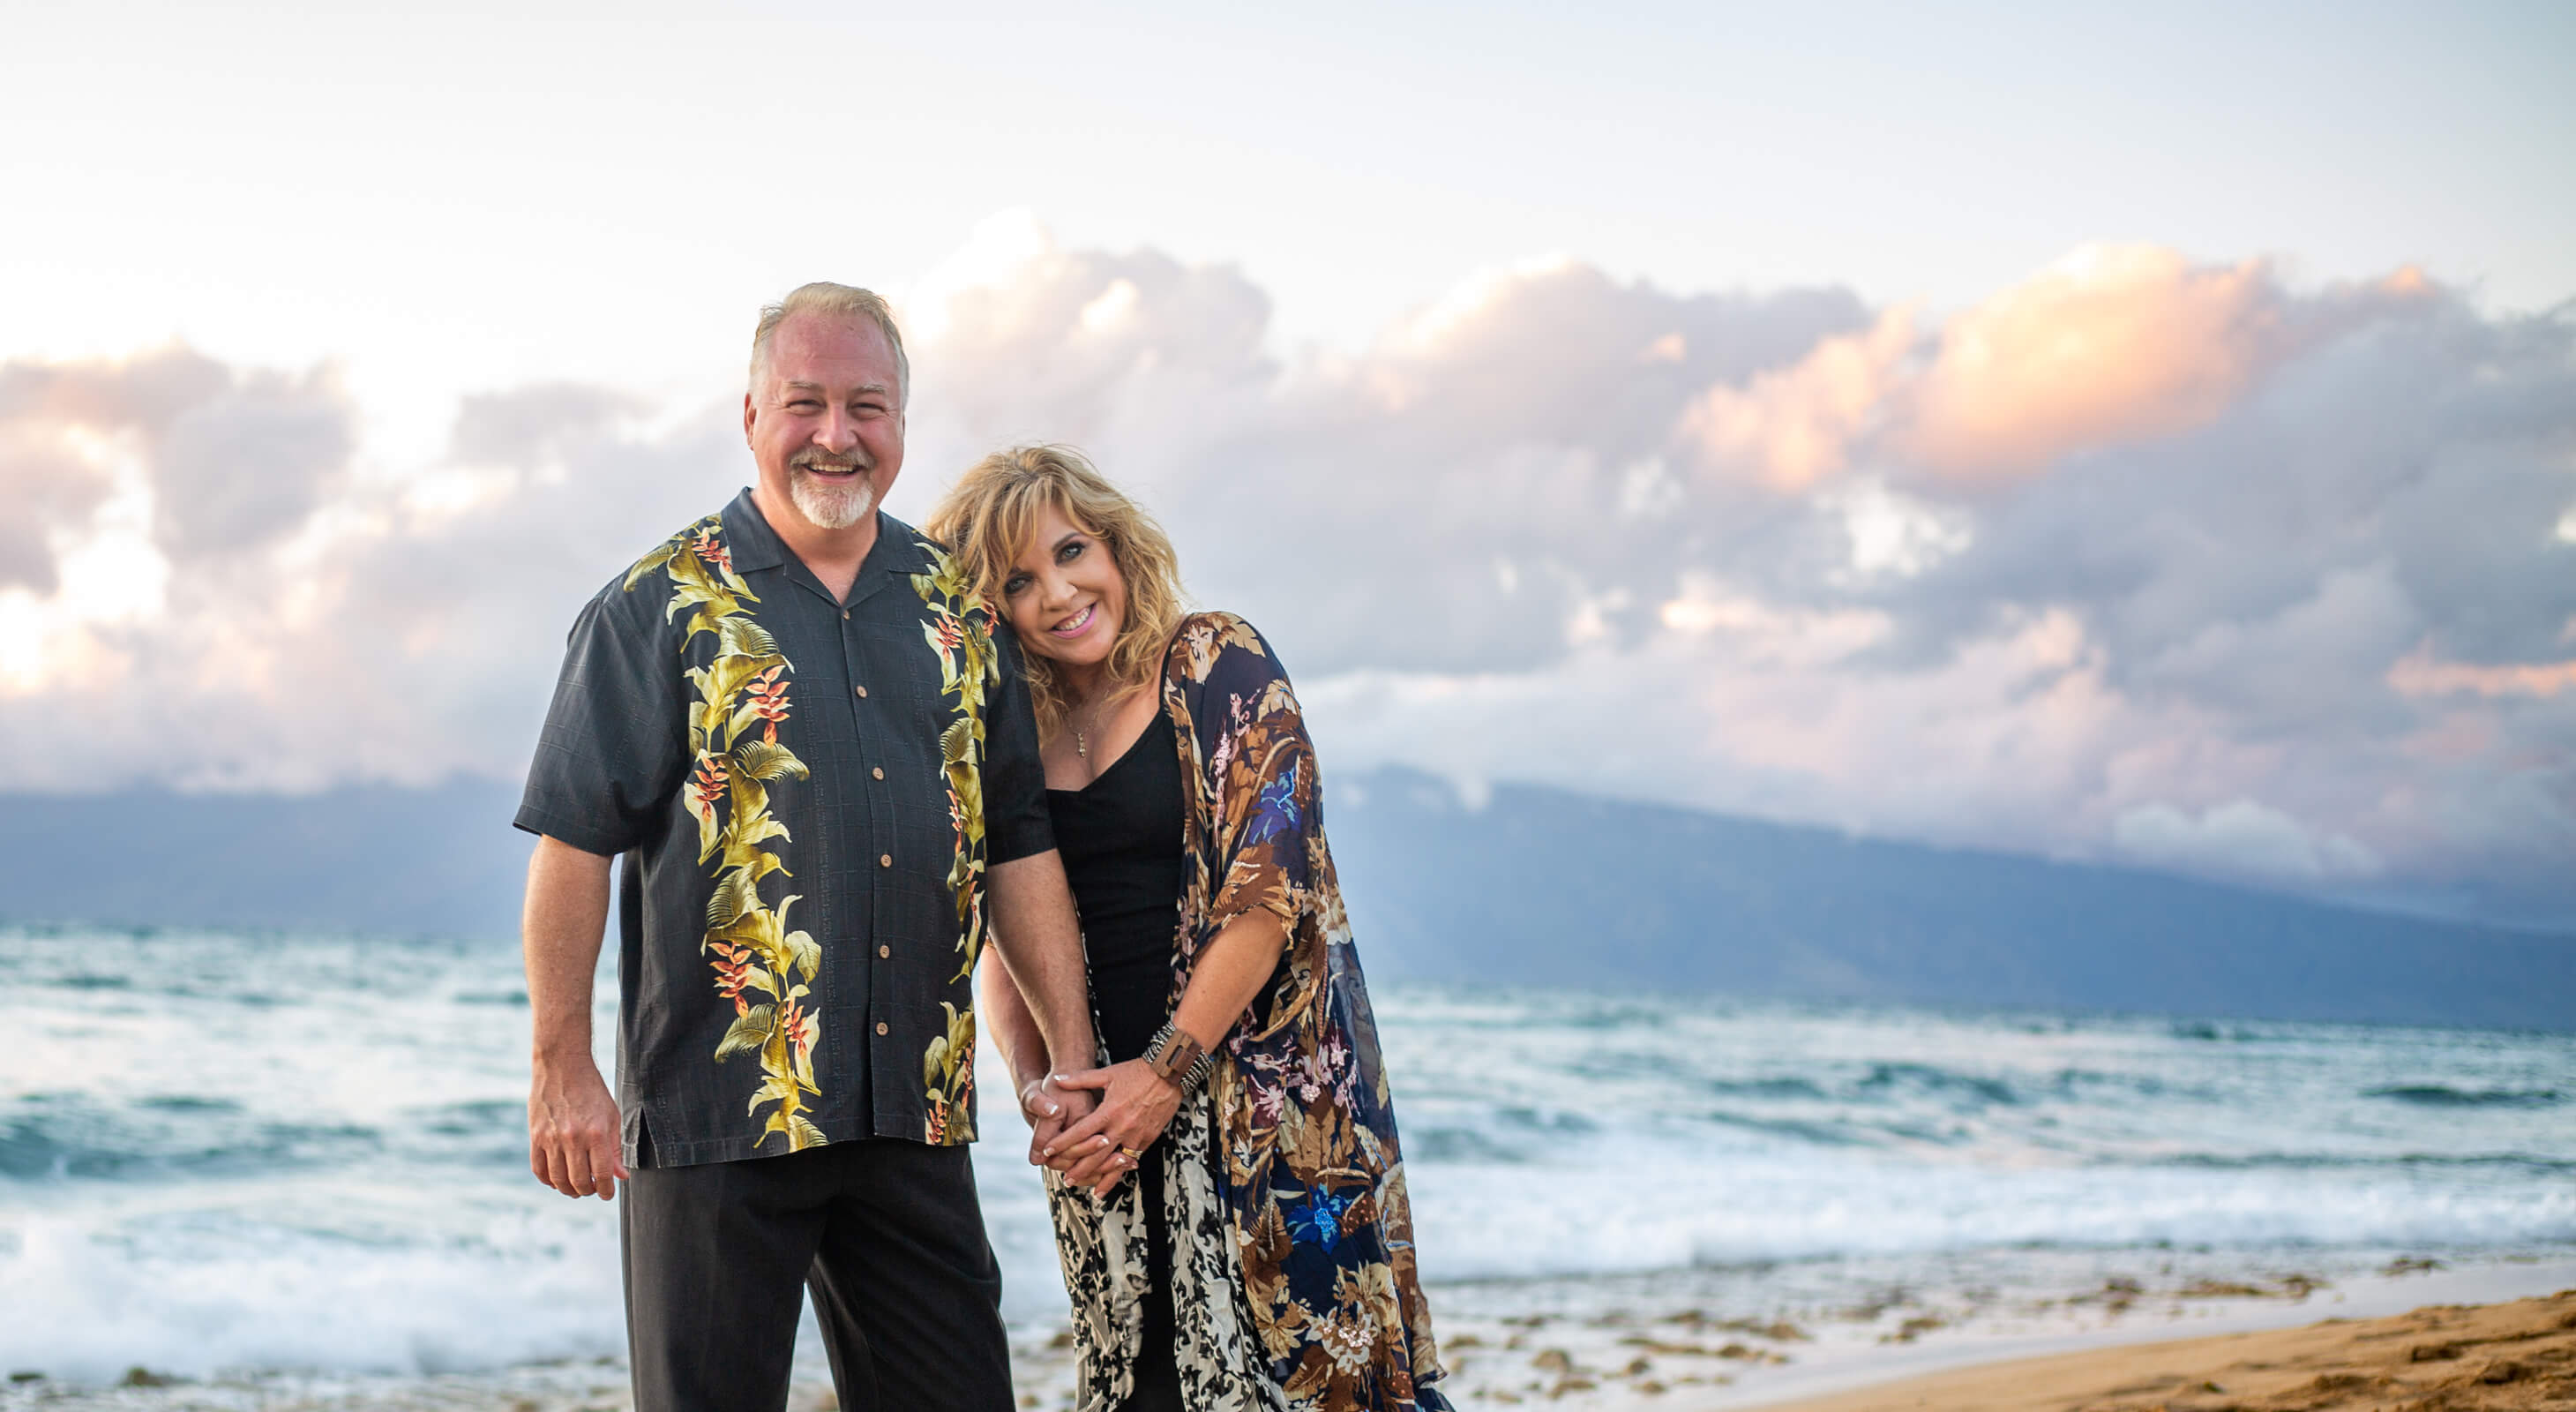 Scott and Allison Crumpton on a beach in Maui